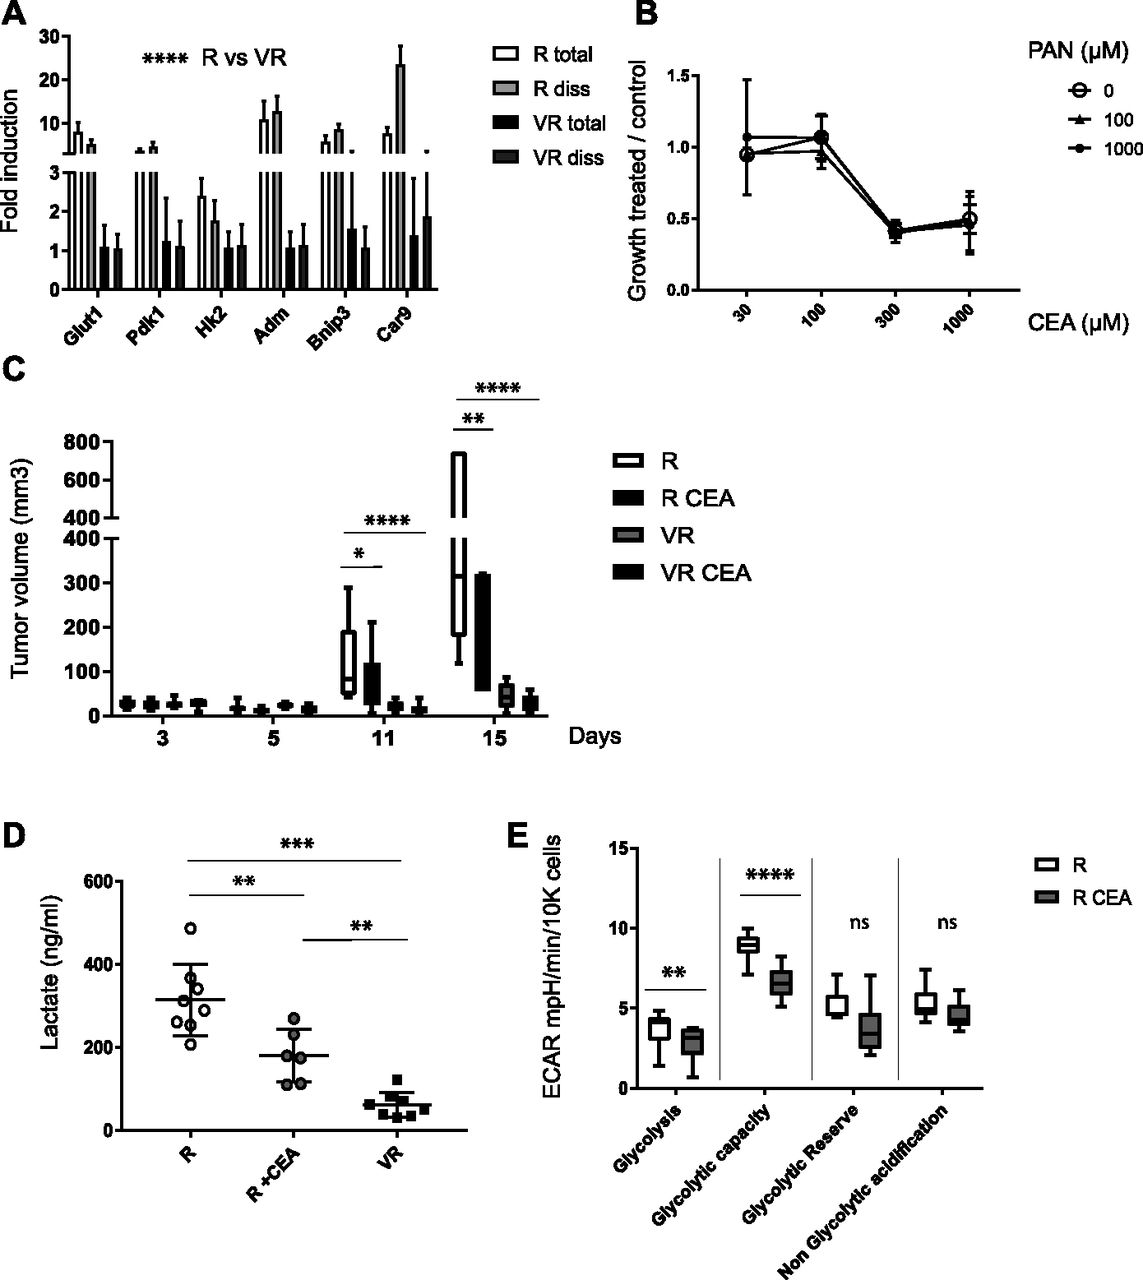 Vnn1 pantetheinase limits the Warburg effect and sarcoma growth by